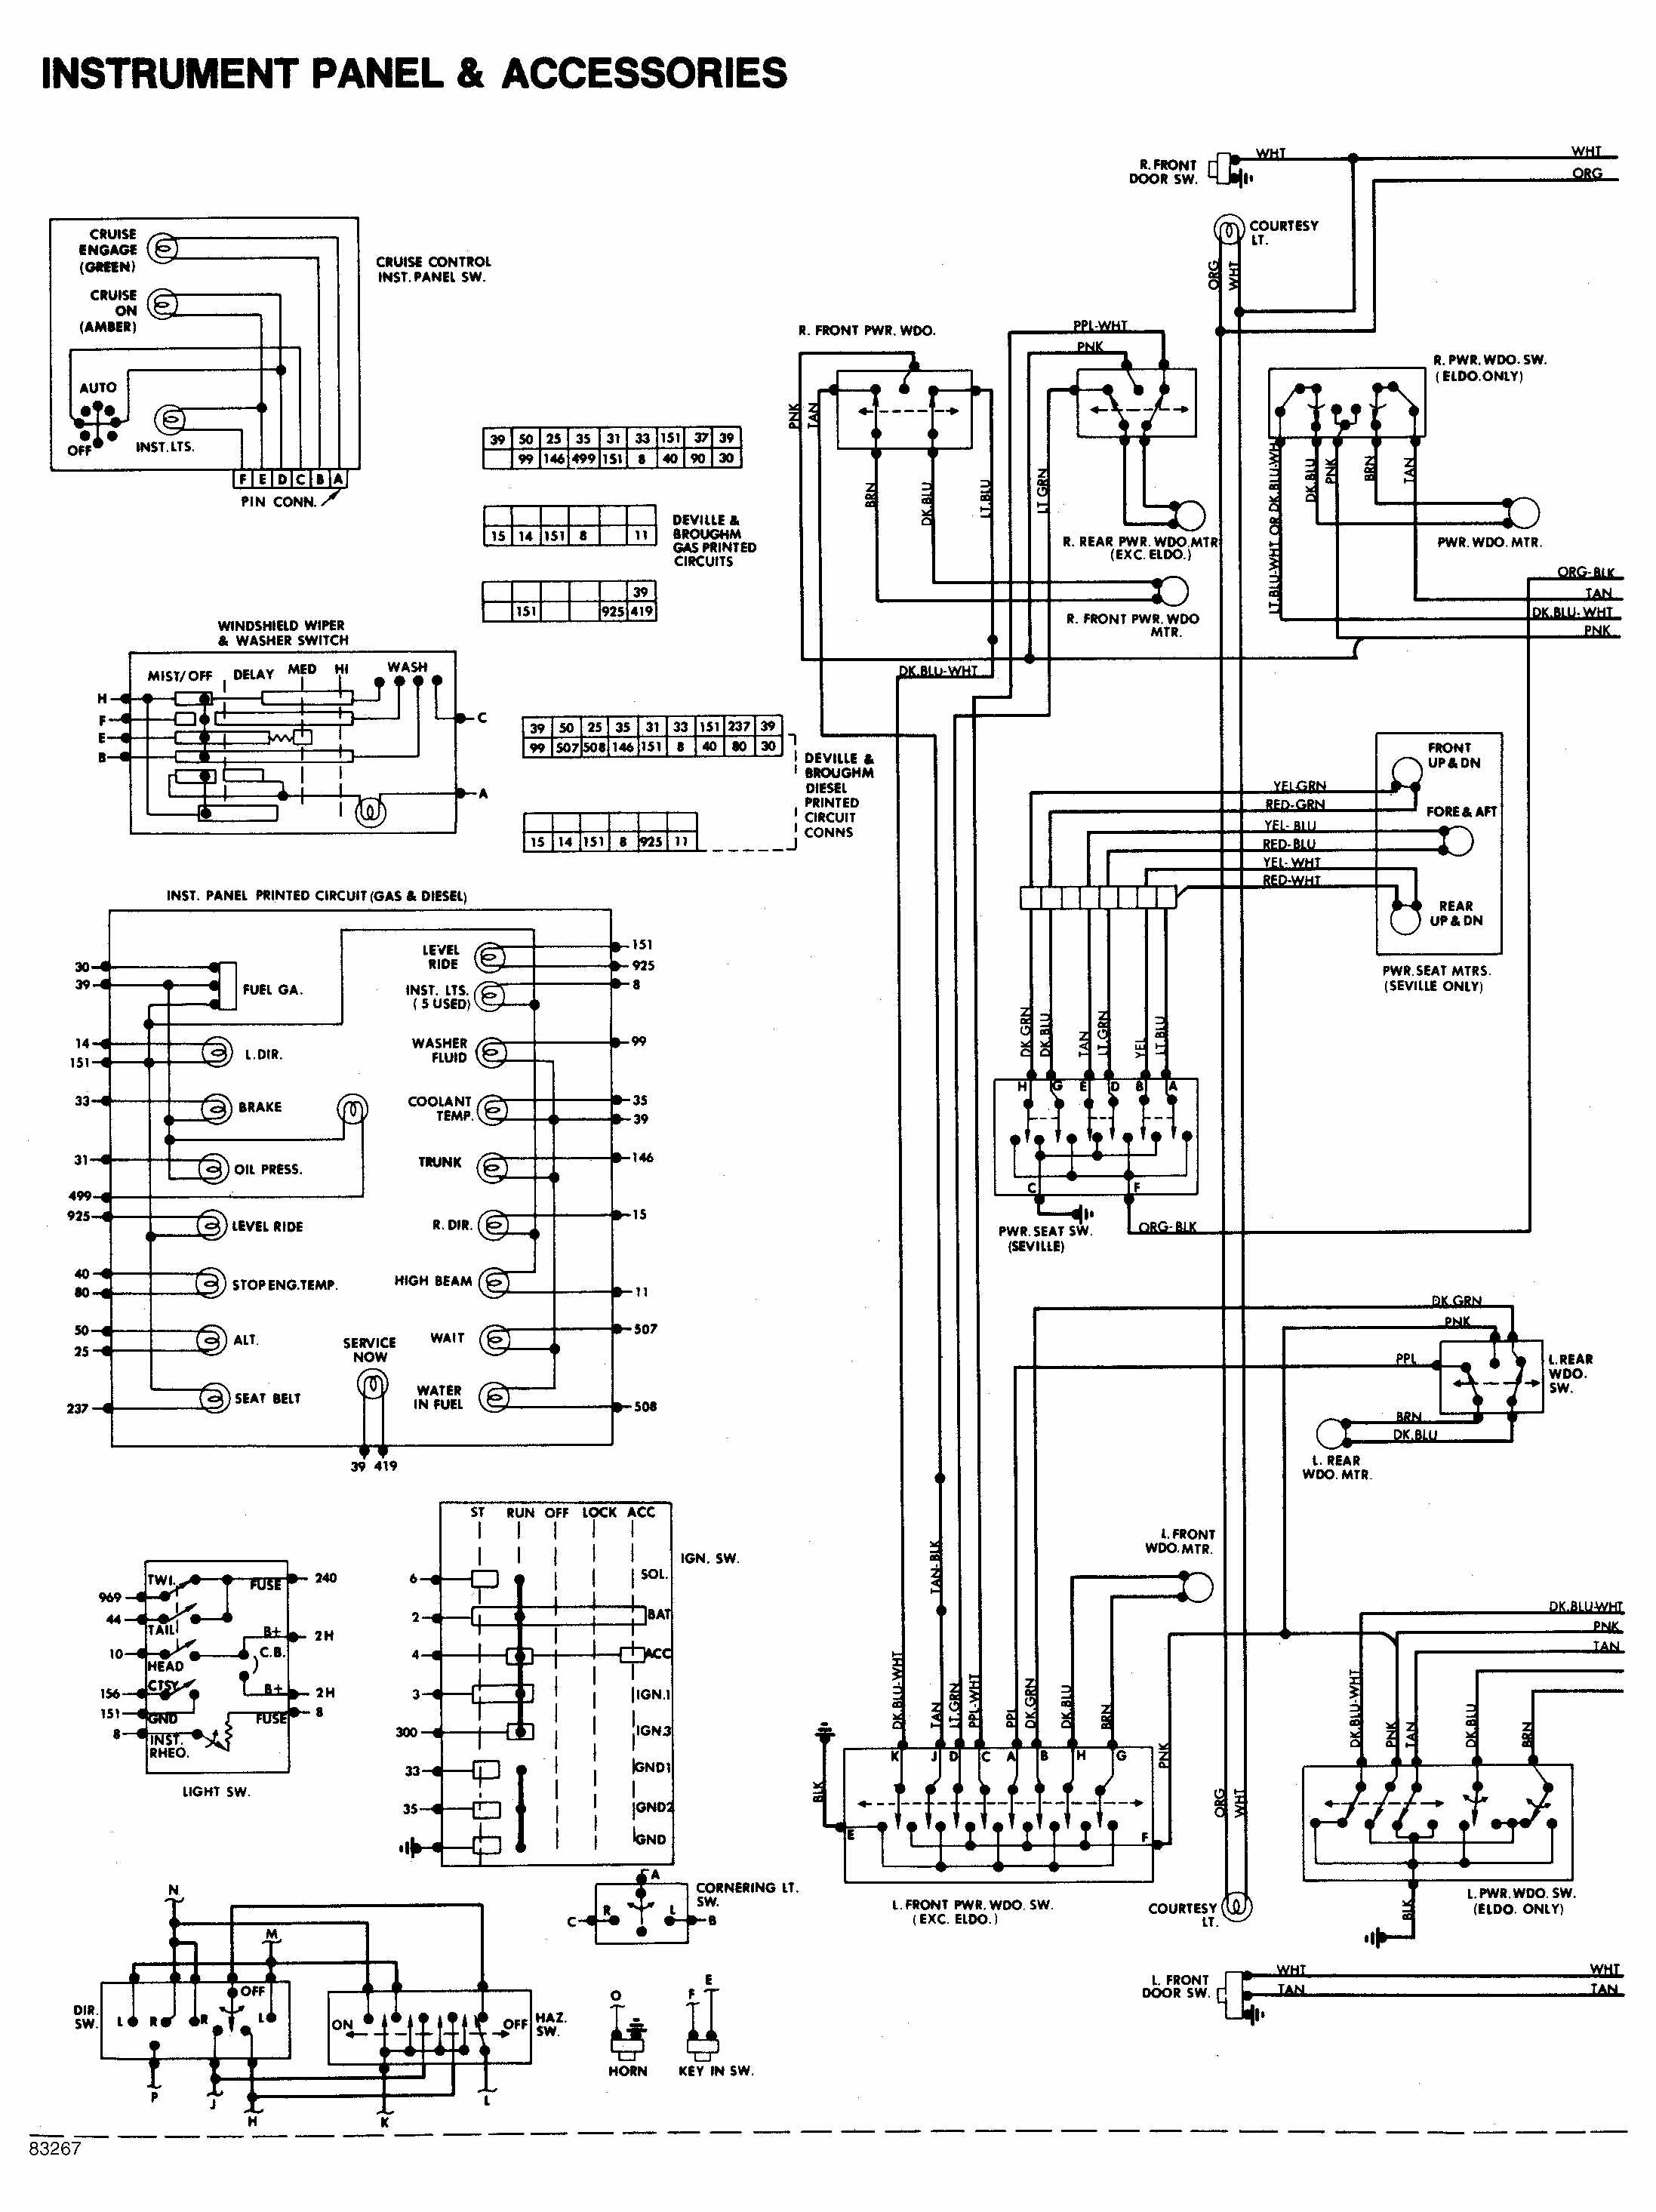 gm wiring colors wiring library 1969 Chevrolet Wiring Diagram 1984 cadillac deville instrument panel and accessories wiring diagram drawing a